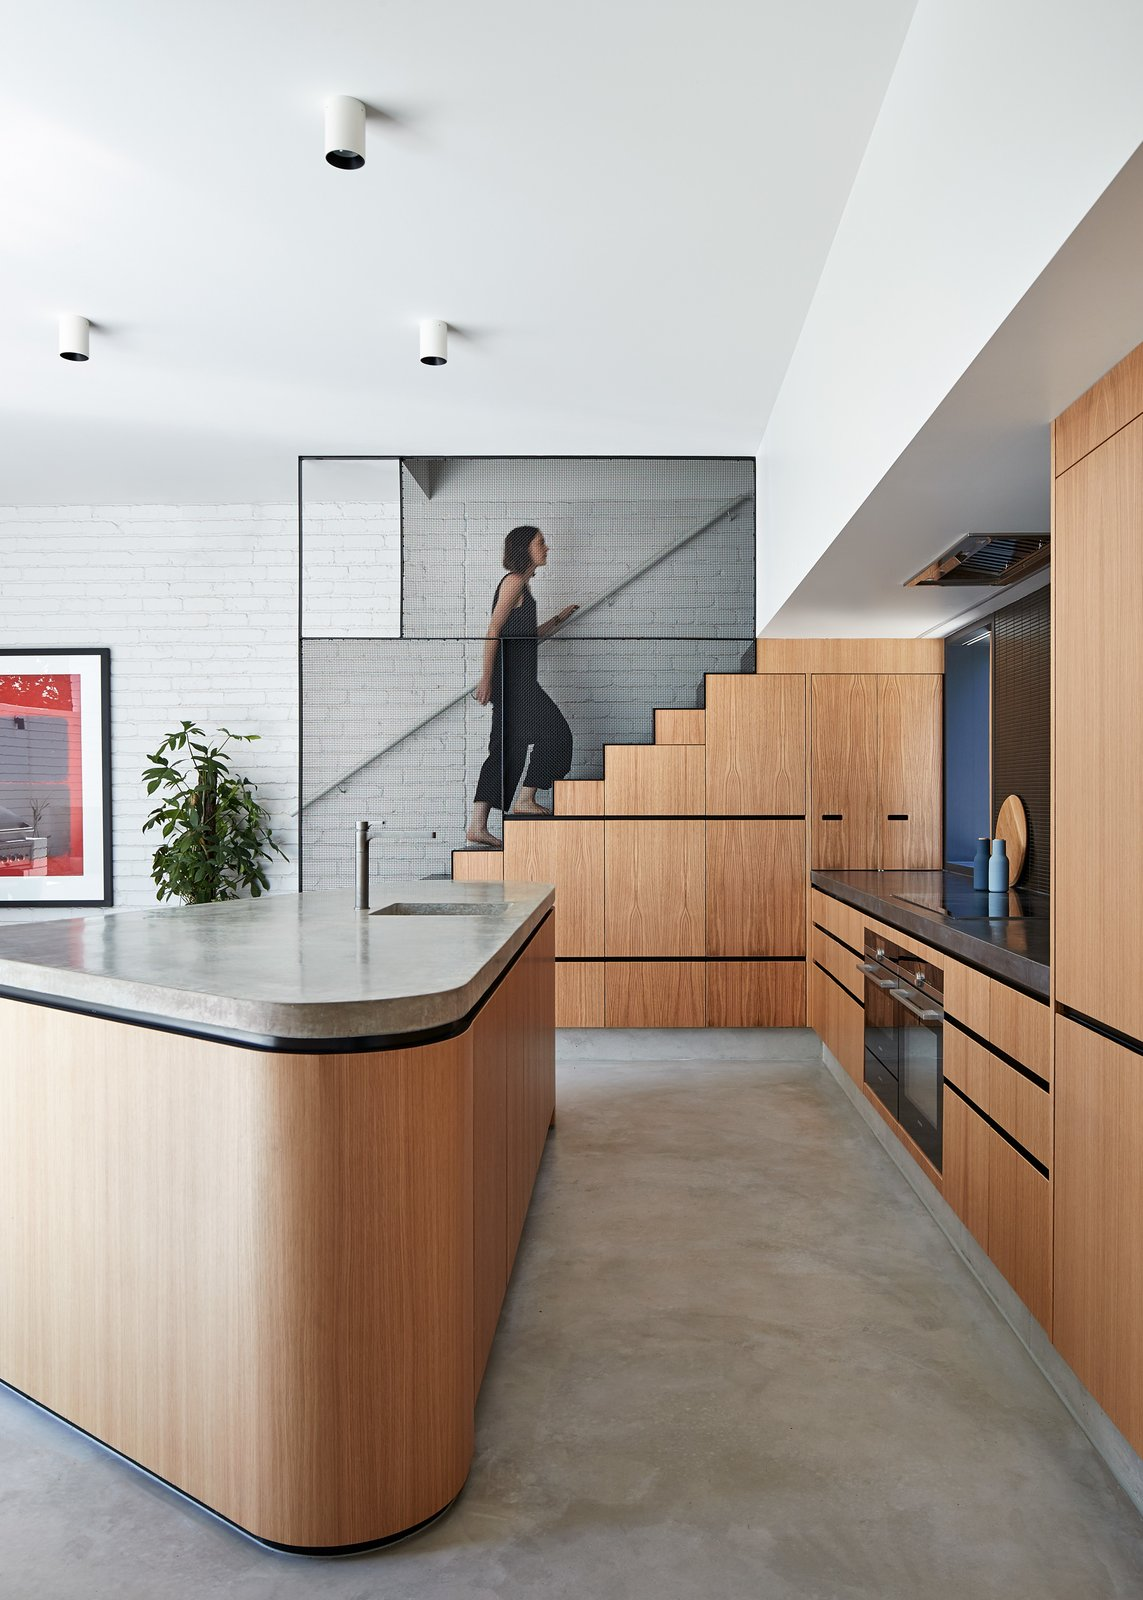 Kitchen, Concrete, Cooktops, Concrete, Refrigerator, Wood, Range Hood, Wall Oven, Ceiling, Concrete, and Undermount A steel mesh balustrade lines the stairway, which leads to the rooftop deck.  Kitchen Cooktops Undermount Concrete Photos from An Australian Home's Brick Addition Creates a Private Backyard Haven